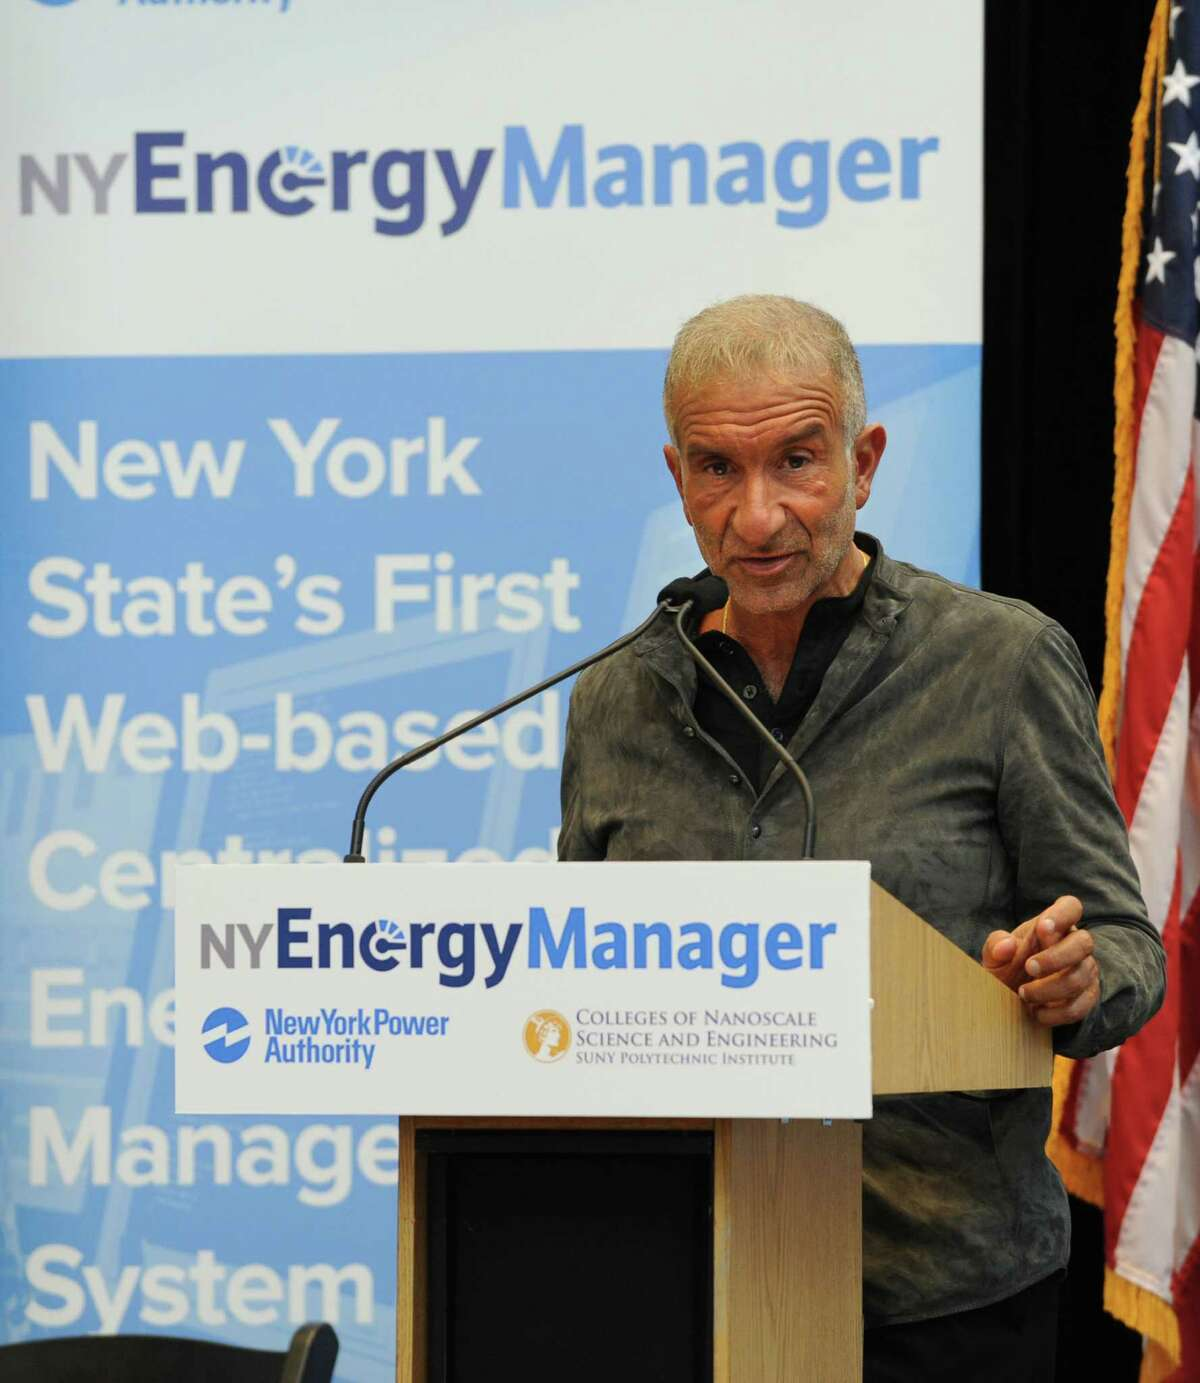 Senior Vice President and Chief Executive Officer, College of Nanoscale Science and Engineering (CNSE) Alain Kaloyeros speaks as New York Power Authority and CNSE at SUNY Polytechnic Institute hold a joint news conference to announce the launch of New York State's first energy management network operations center - the NY Energy Manager (NYEM) -located at CNSE Tuesday, Oct. 21, 2014 in Albany, N.Y.(Lori Van Buren / Times Union)